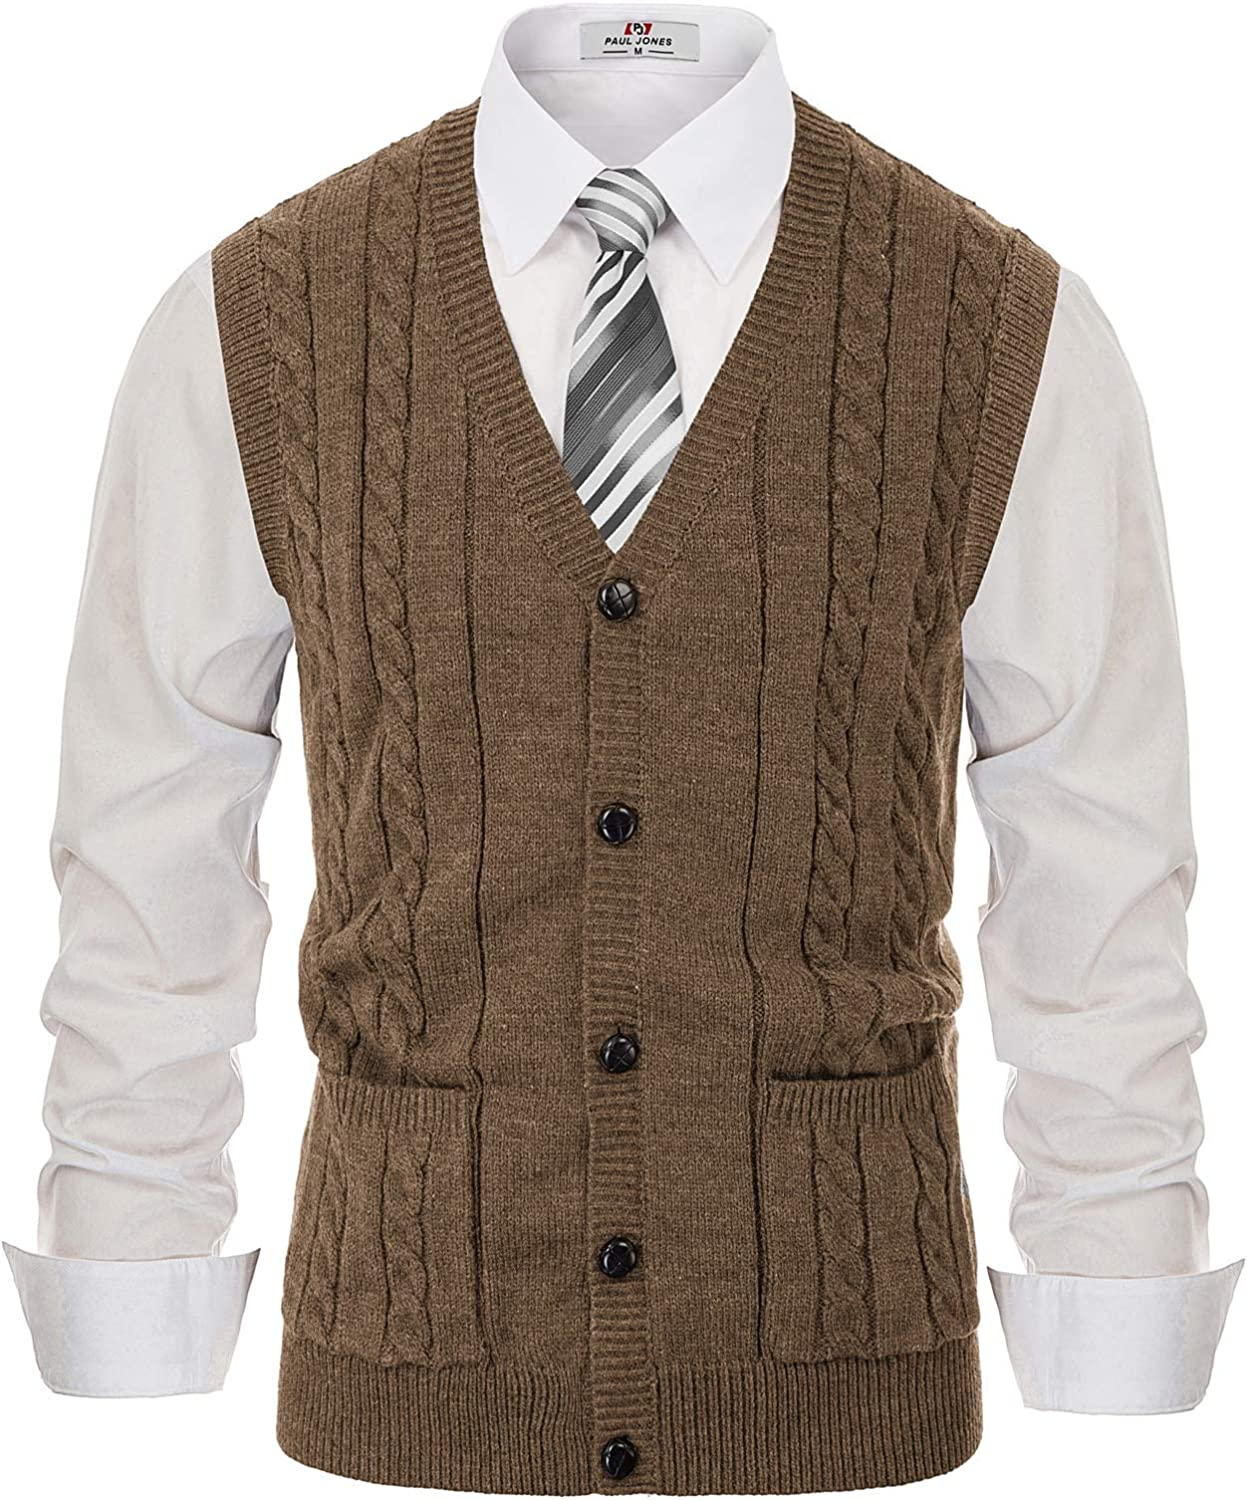 Button up sweater vest for men fortis investment management india private limited mumbai